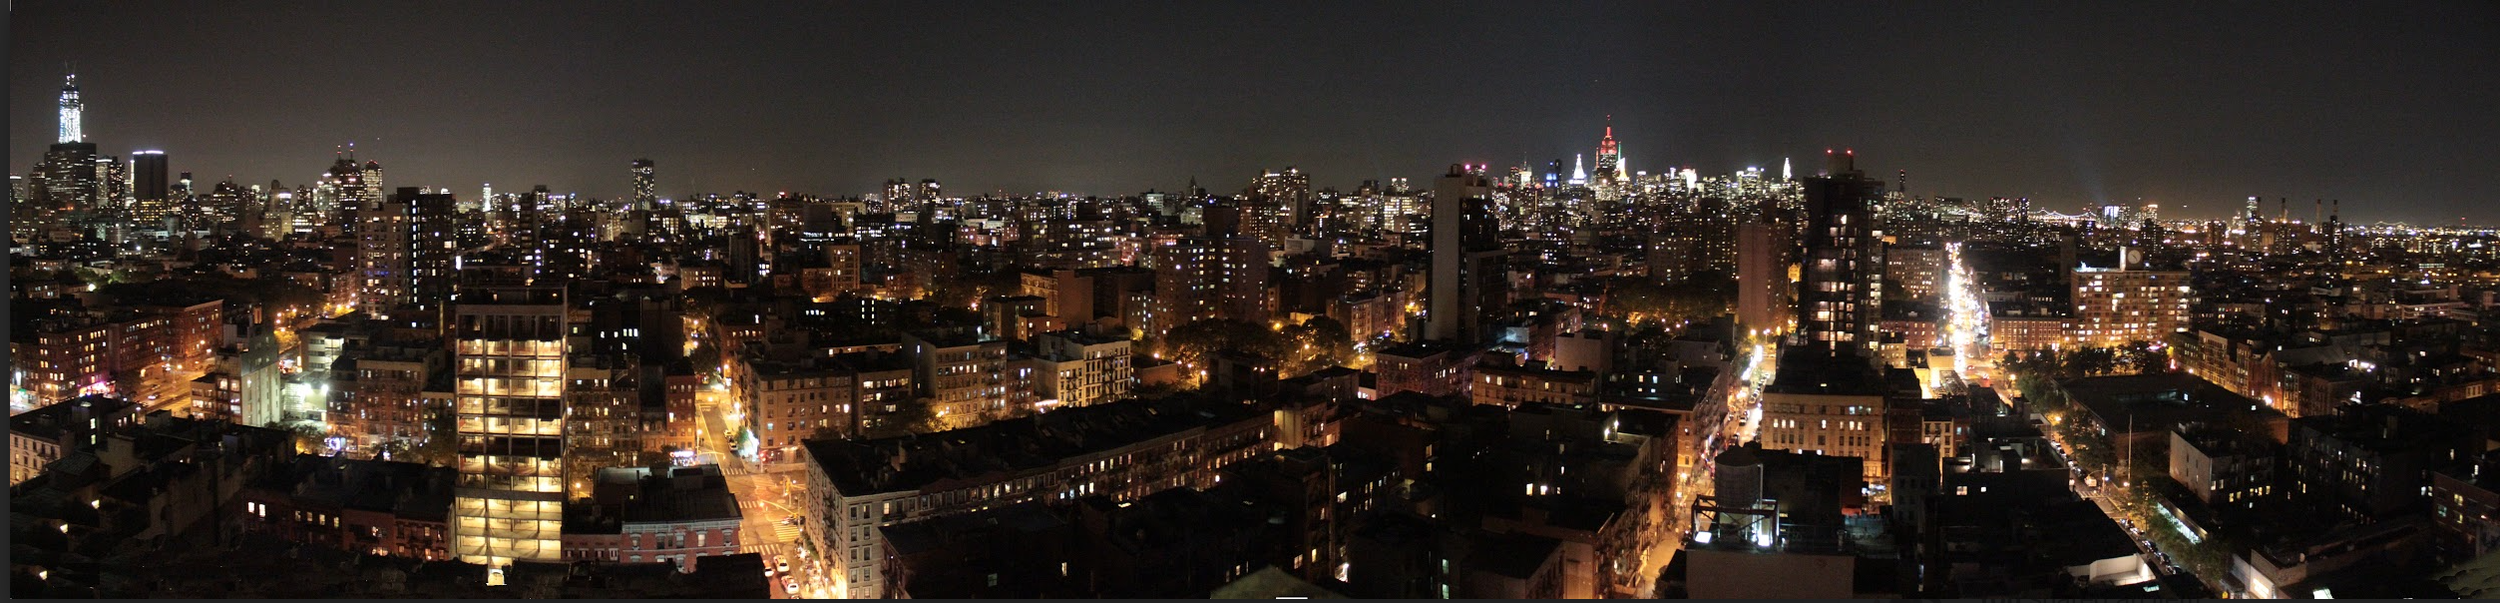 "Manhattan by Moonlight,   Jamel Mims    Digital Photography, 8""x32"""